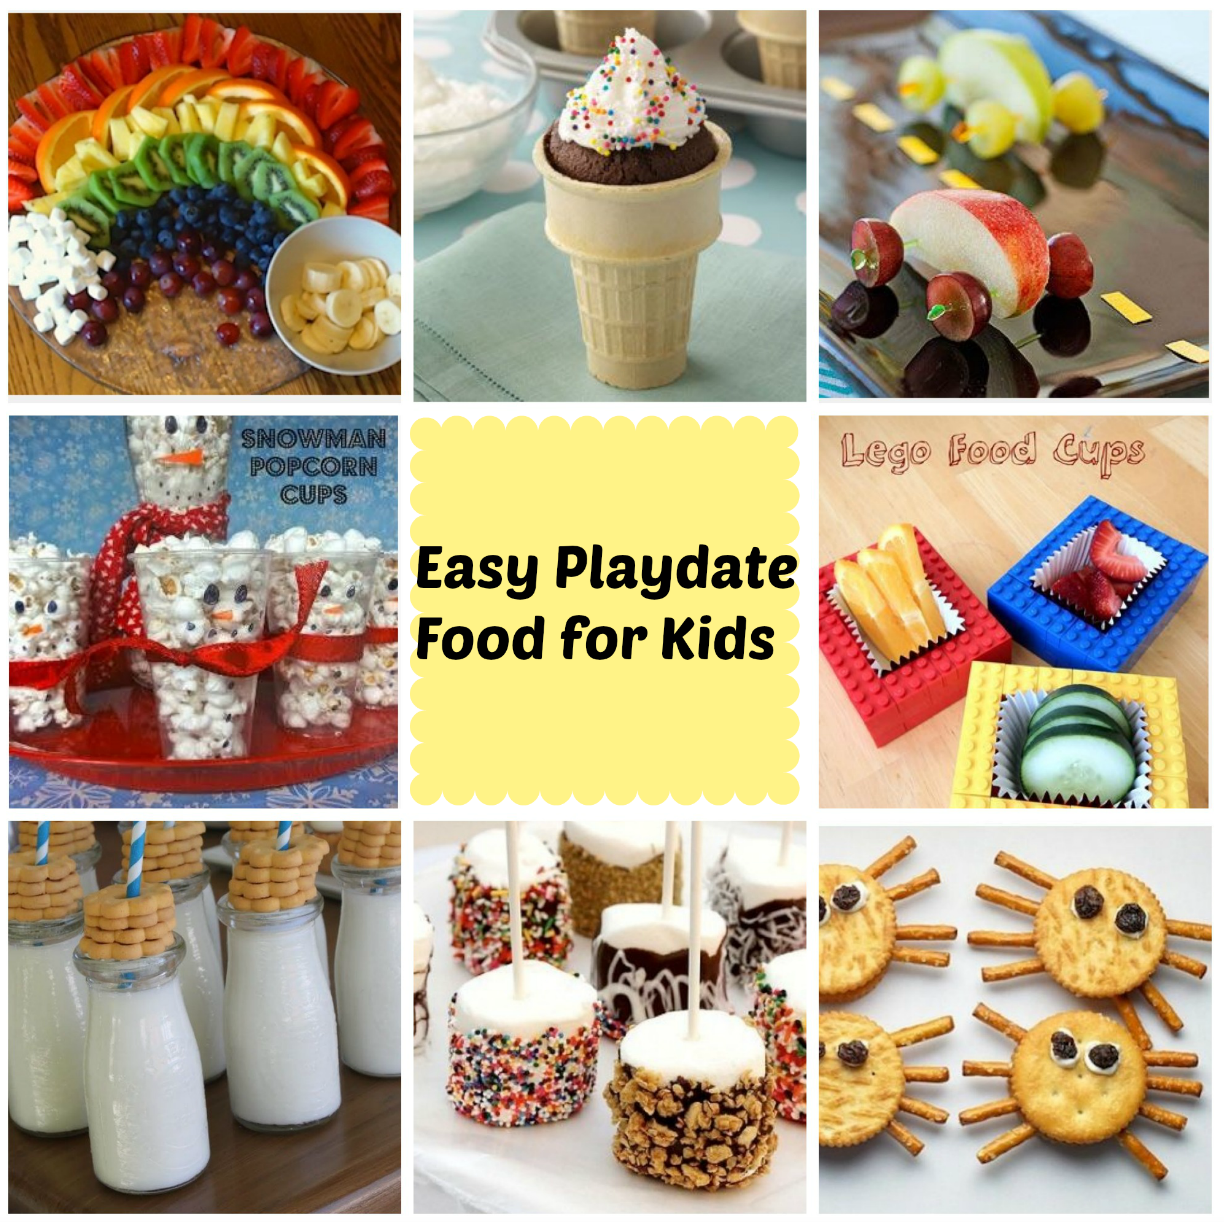 Best Kid Food Ideas For A Playdate Stylish Life For Moms